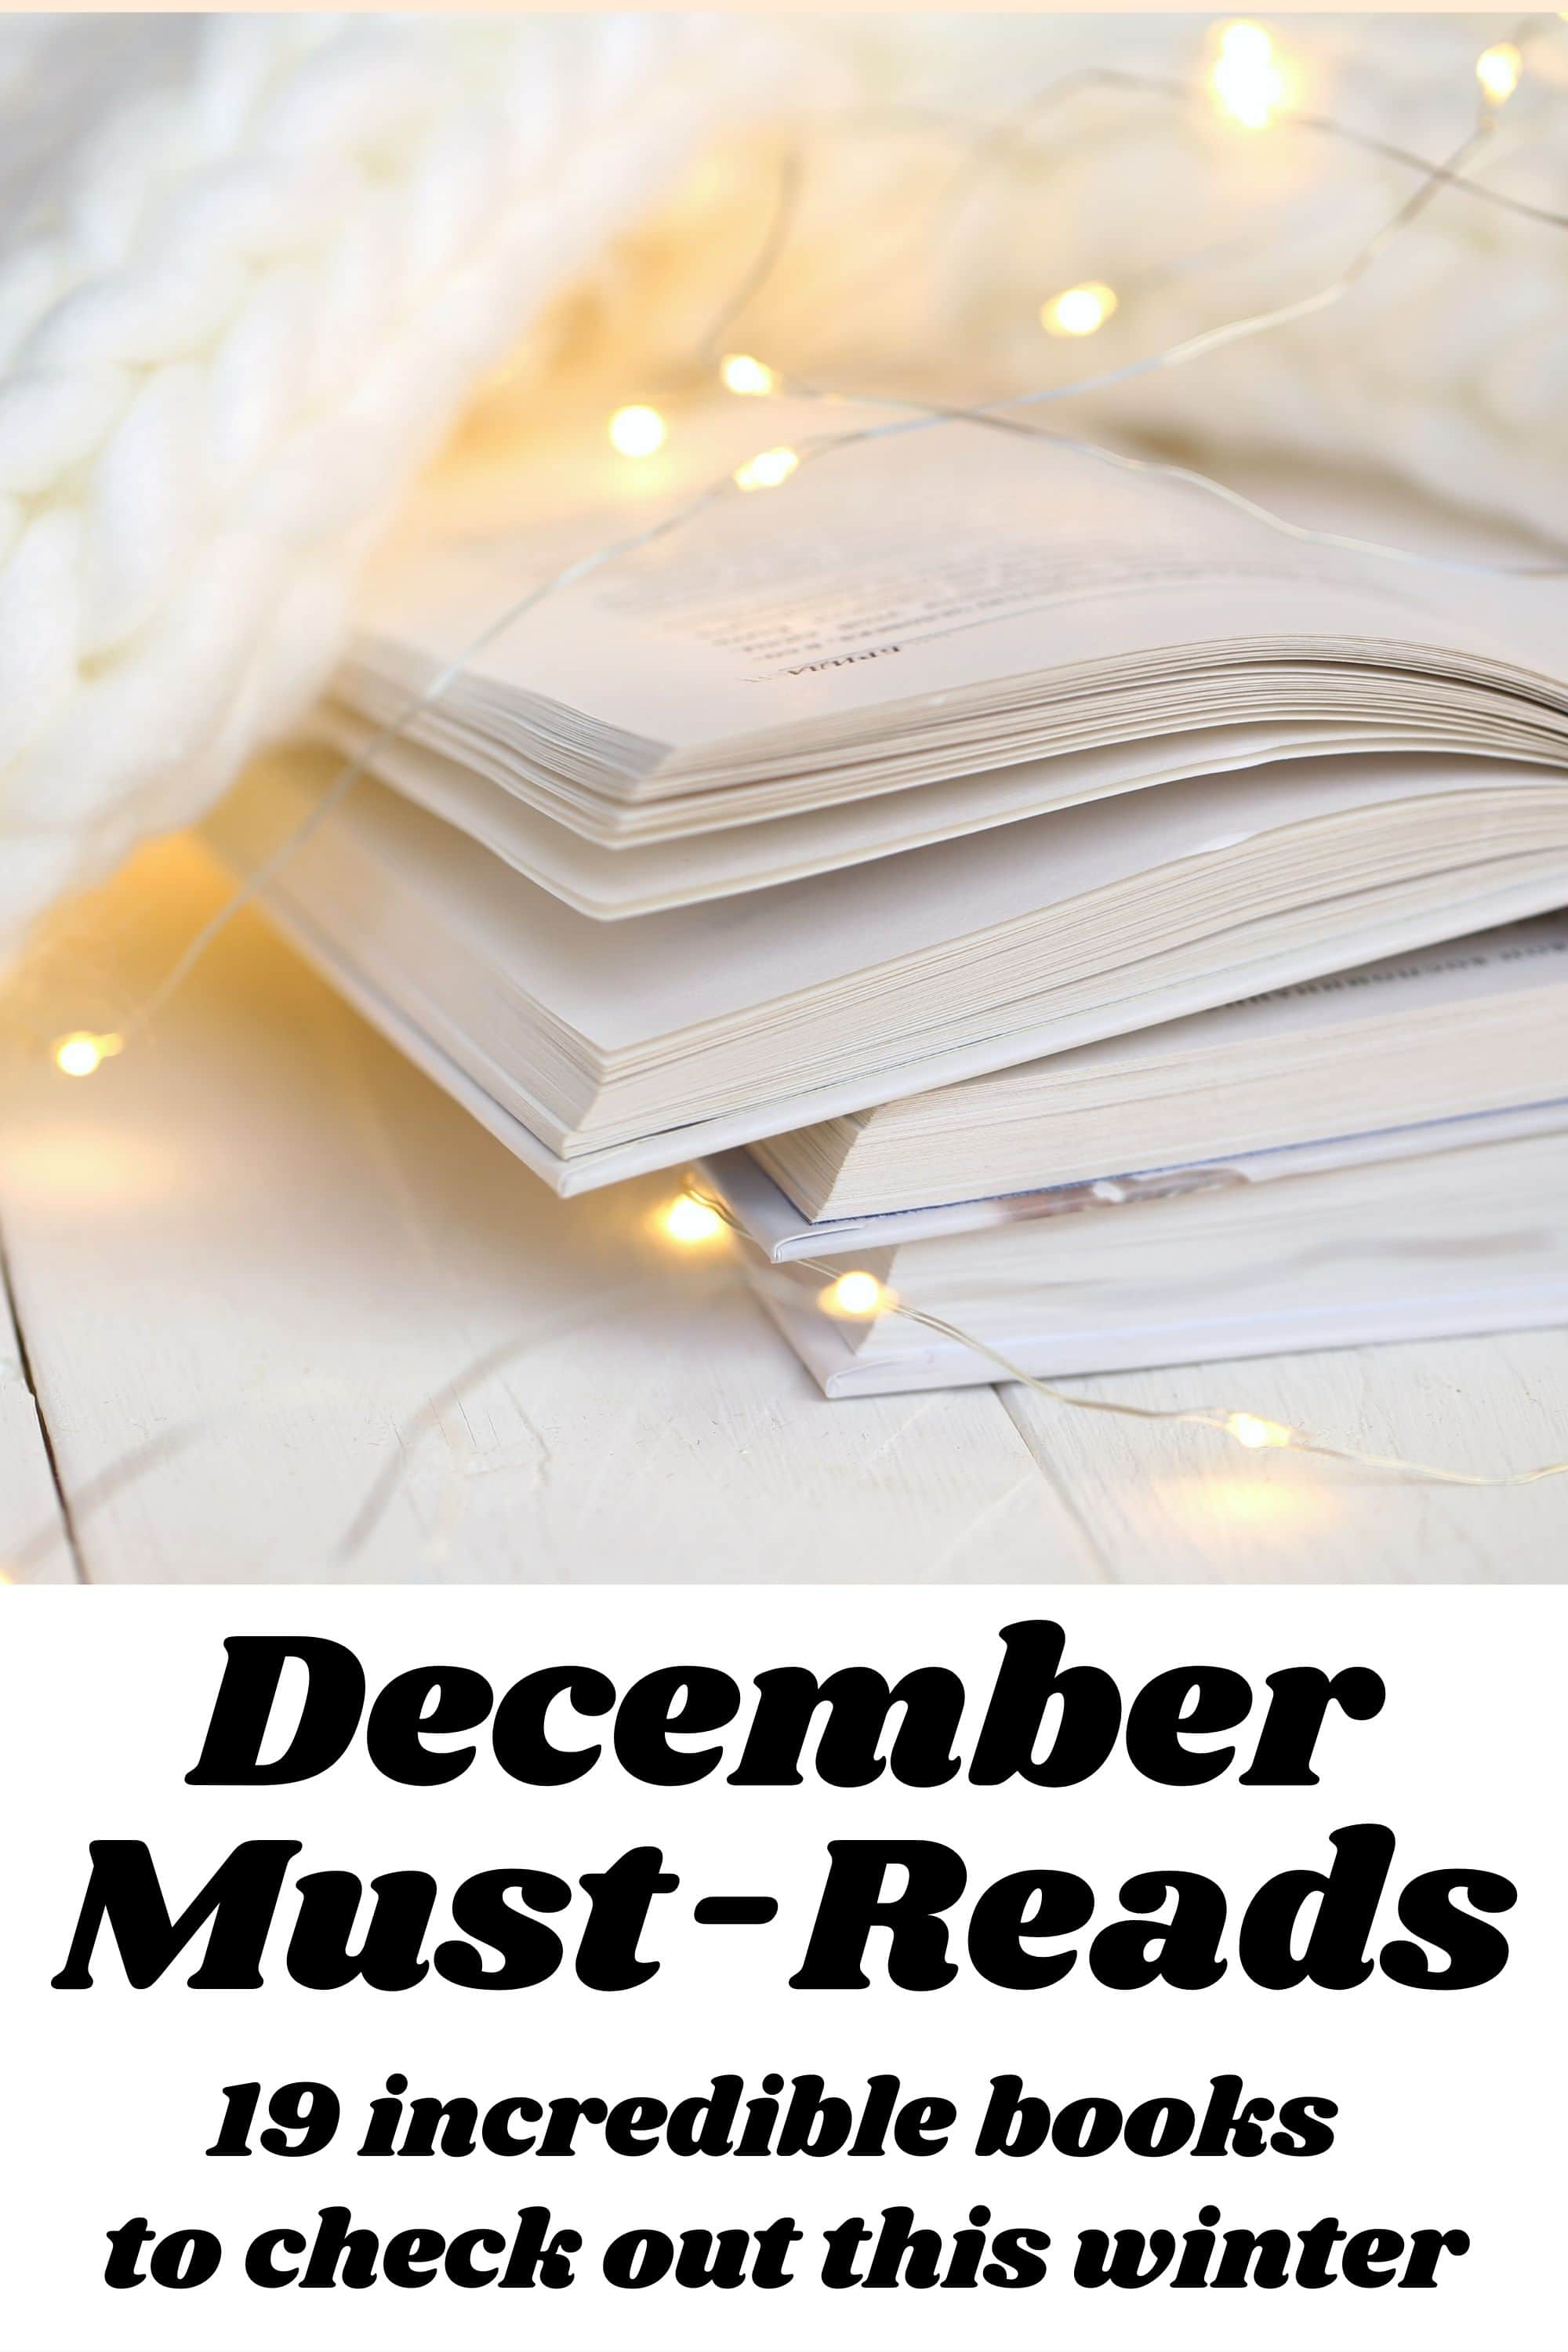 December 2020 Must-Reads from MomAdvice.com